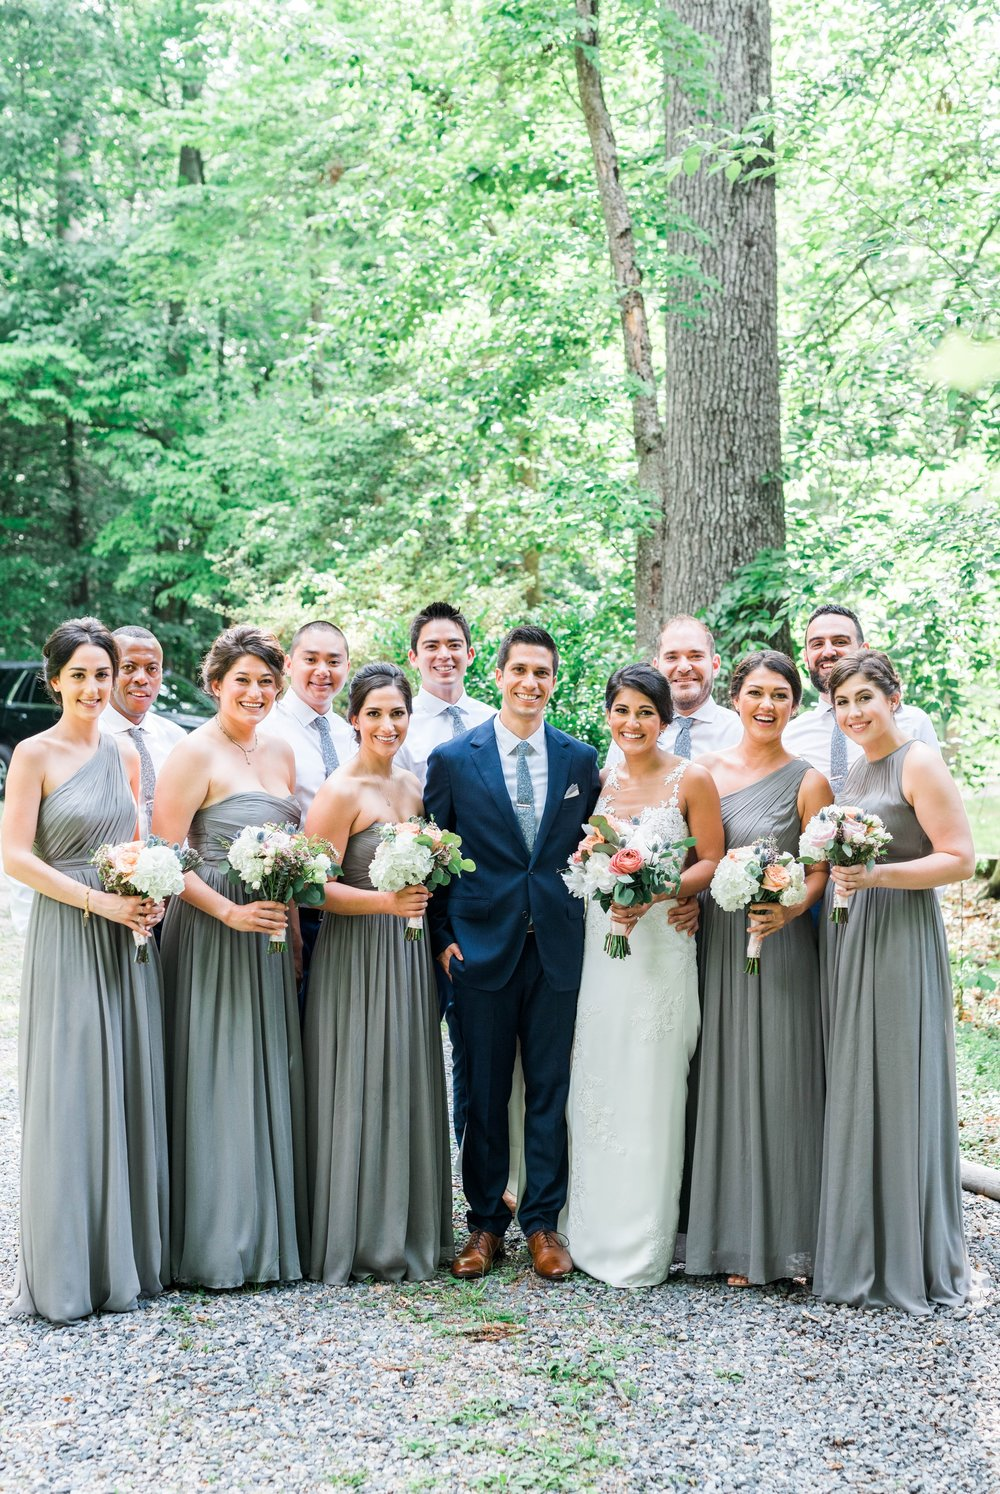 Williamsburgvawedding_backyardwedding_virginiaweddingphotographer_lynchburgweddingphotographer_PaulAliya 47.jpg